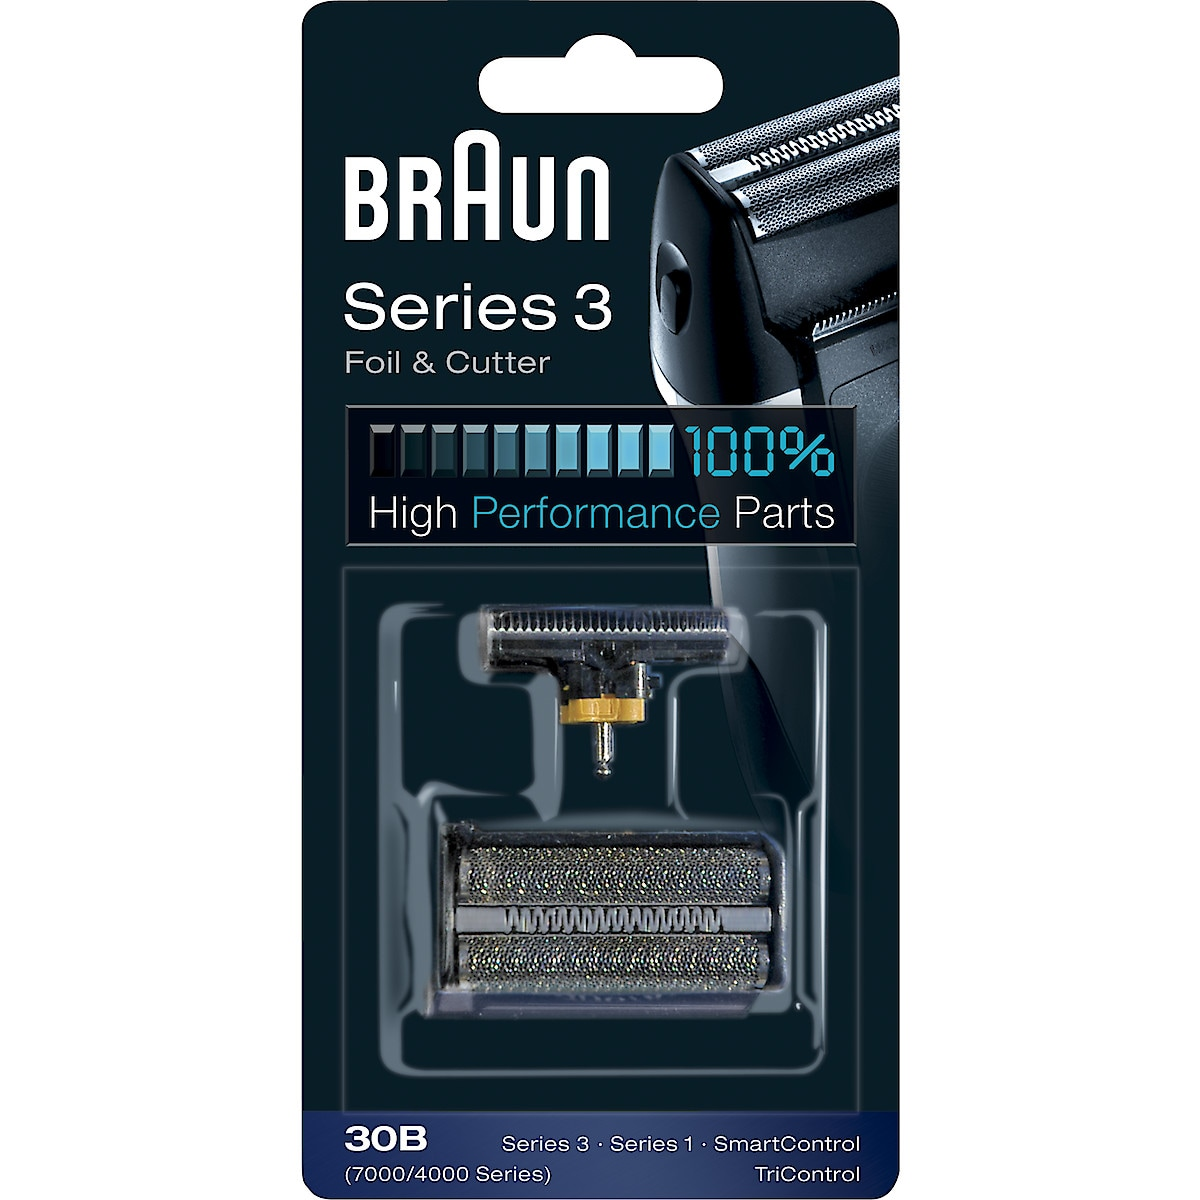 Replacement Foil and Cutter for Braun 30B Shavers